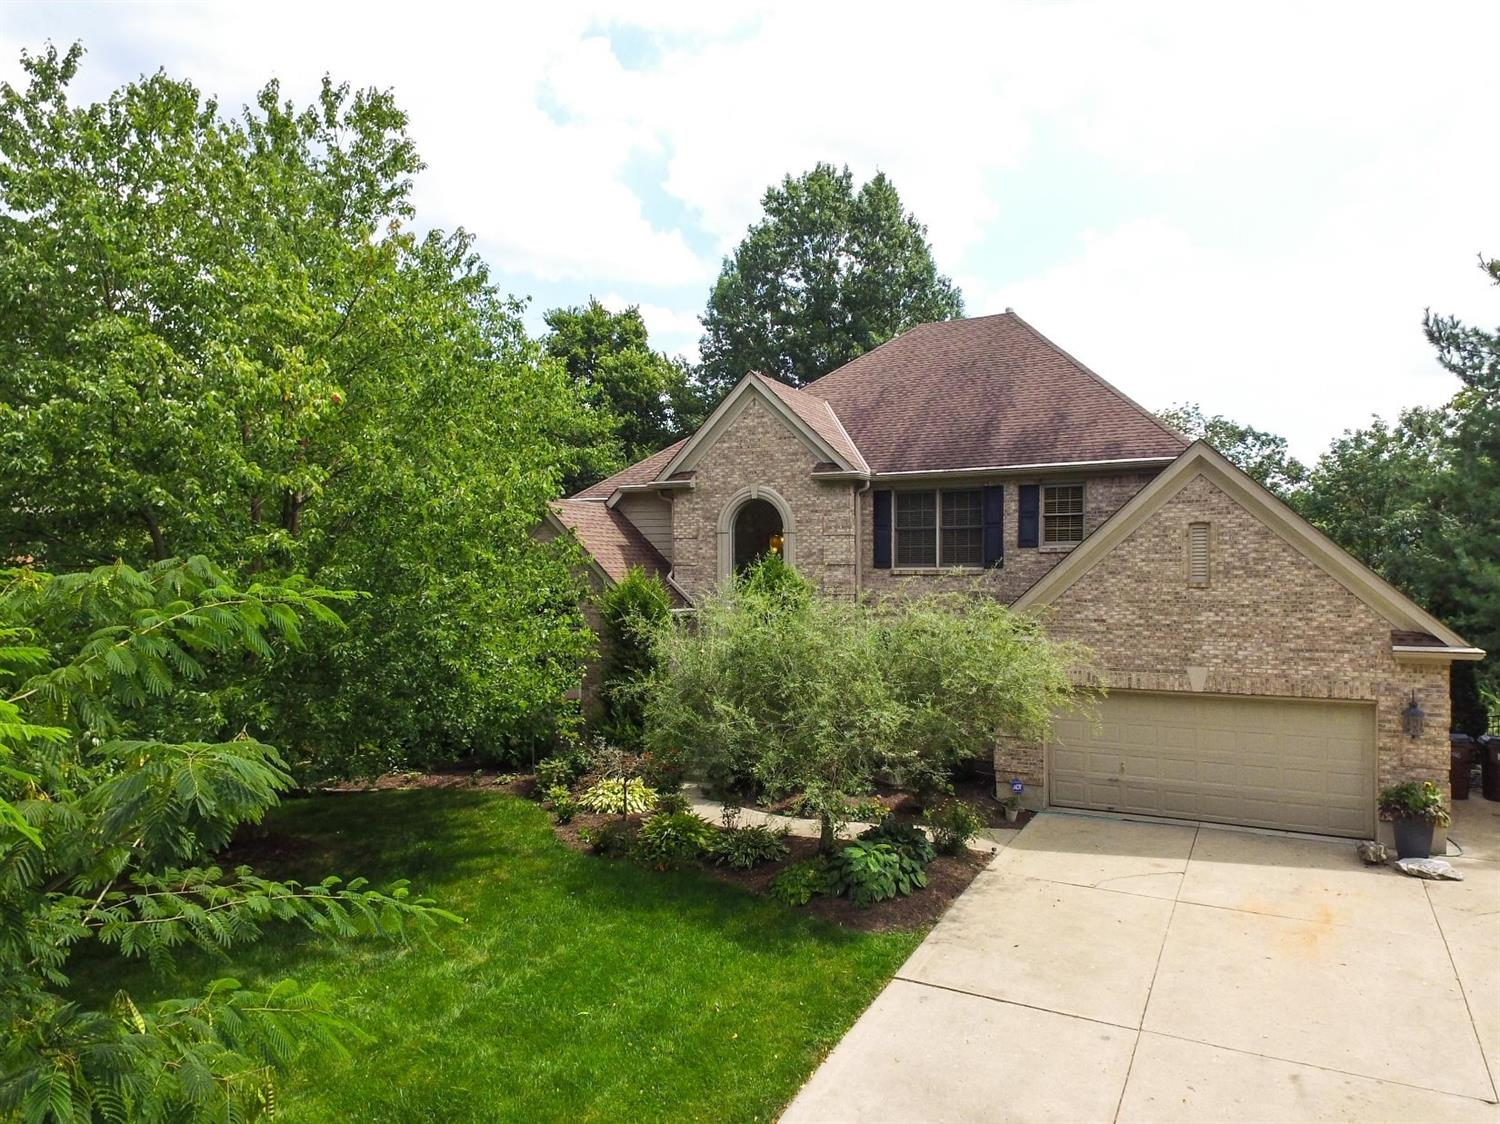 6670 Ridgetop Ct Miami Twp. (East), OH